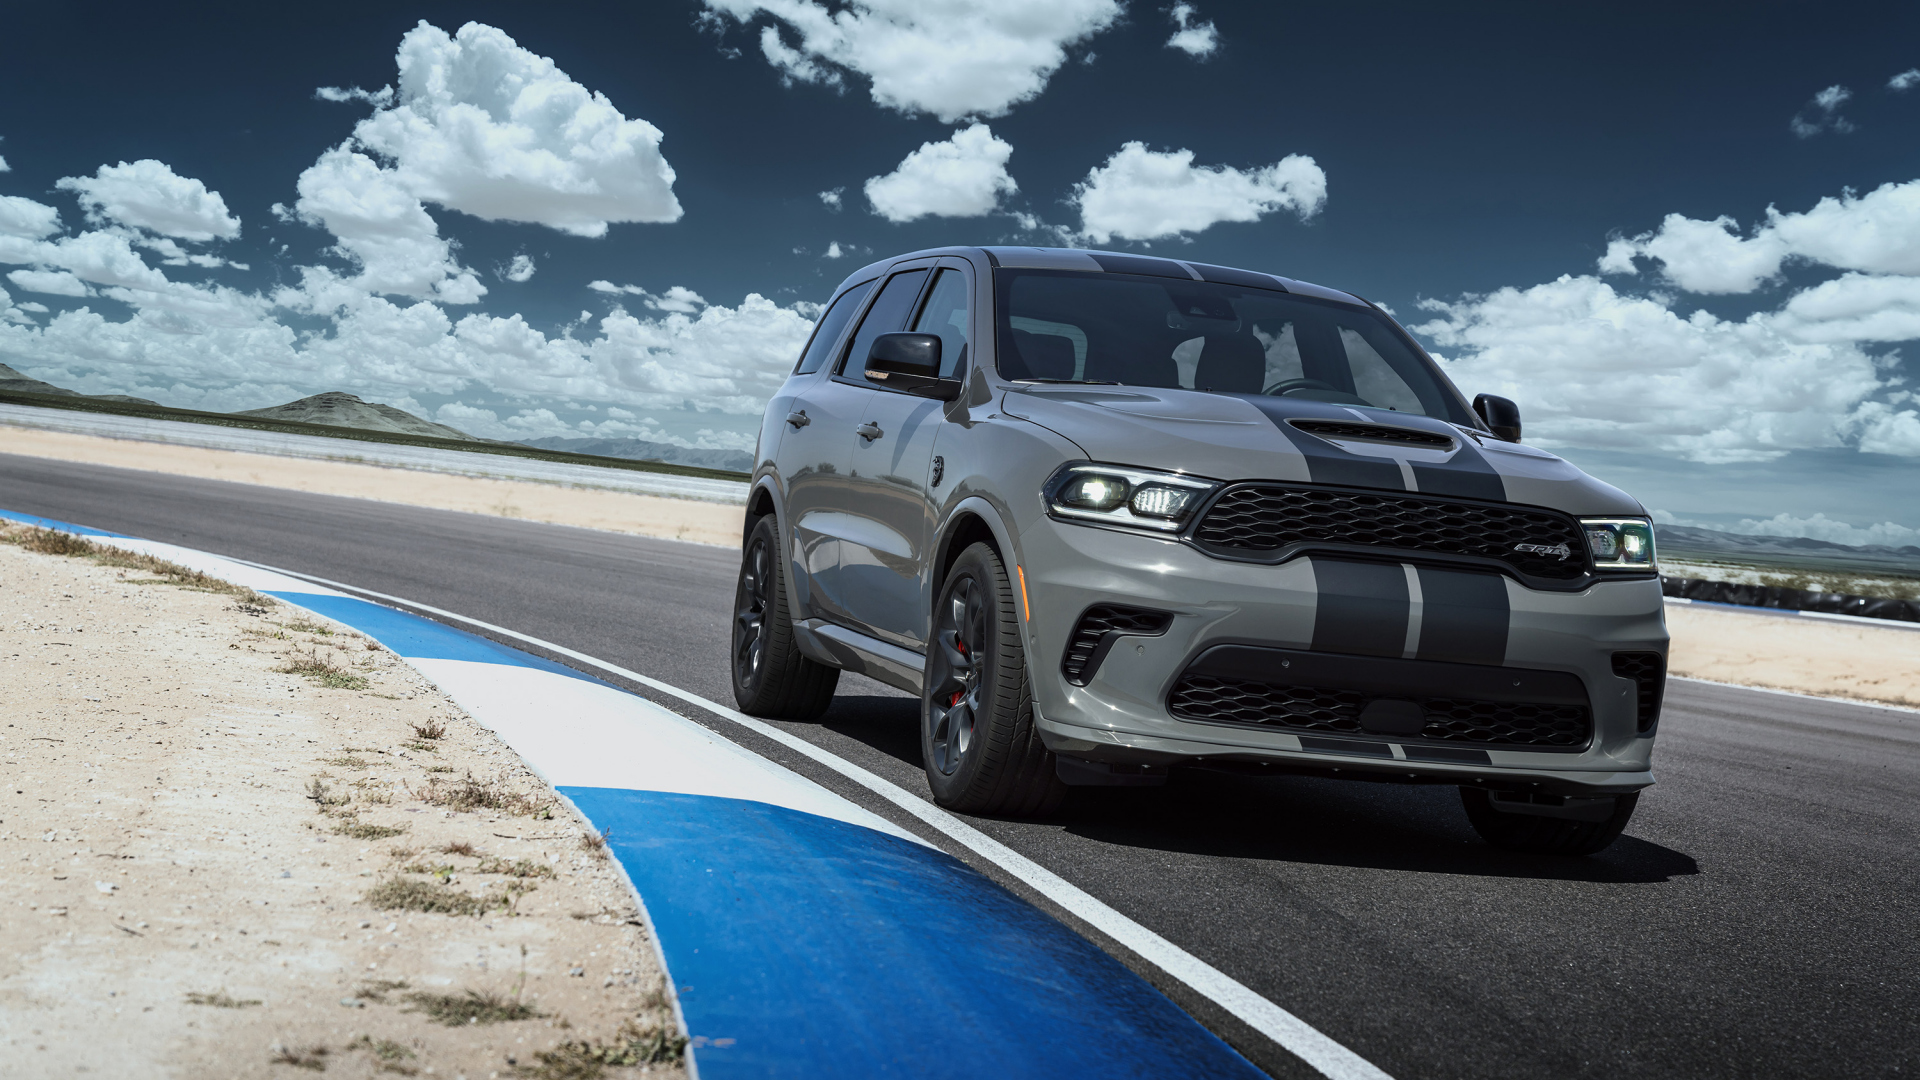 Dodge Durango Srt Hellcat 2021 Desktop Wallpaper 1920x1080